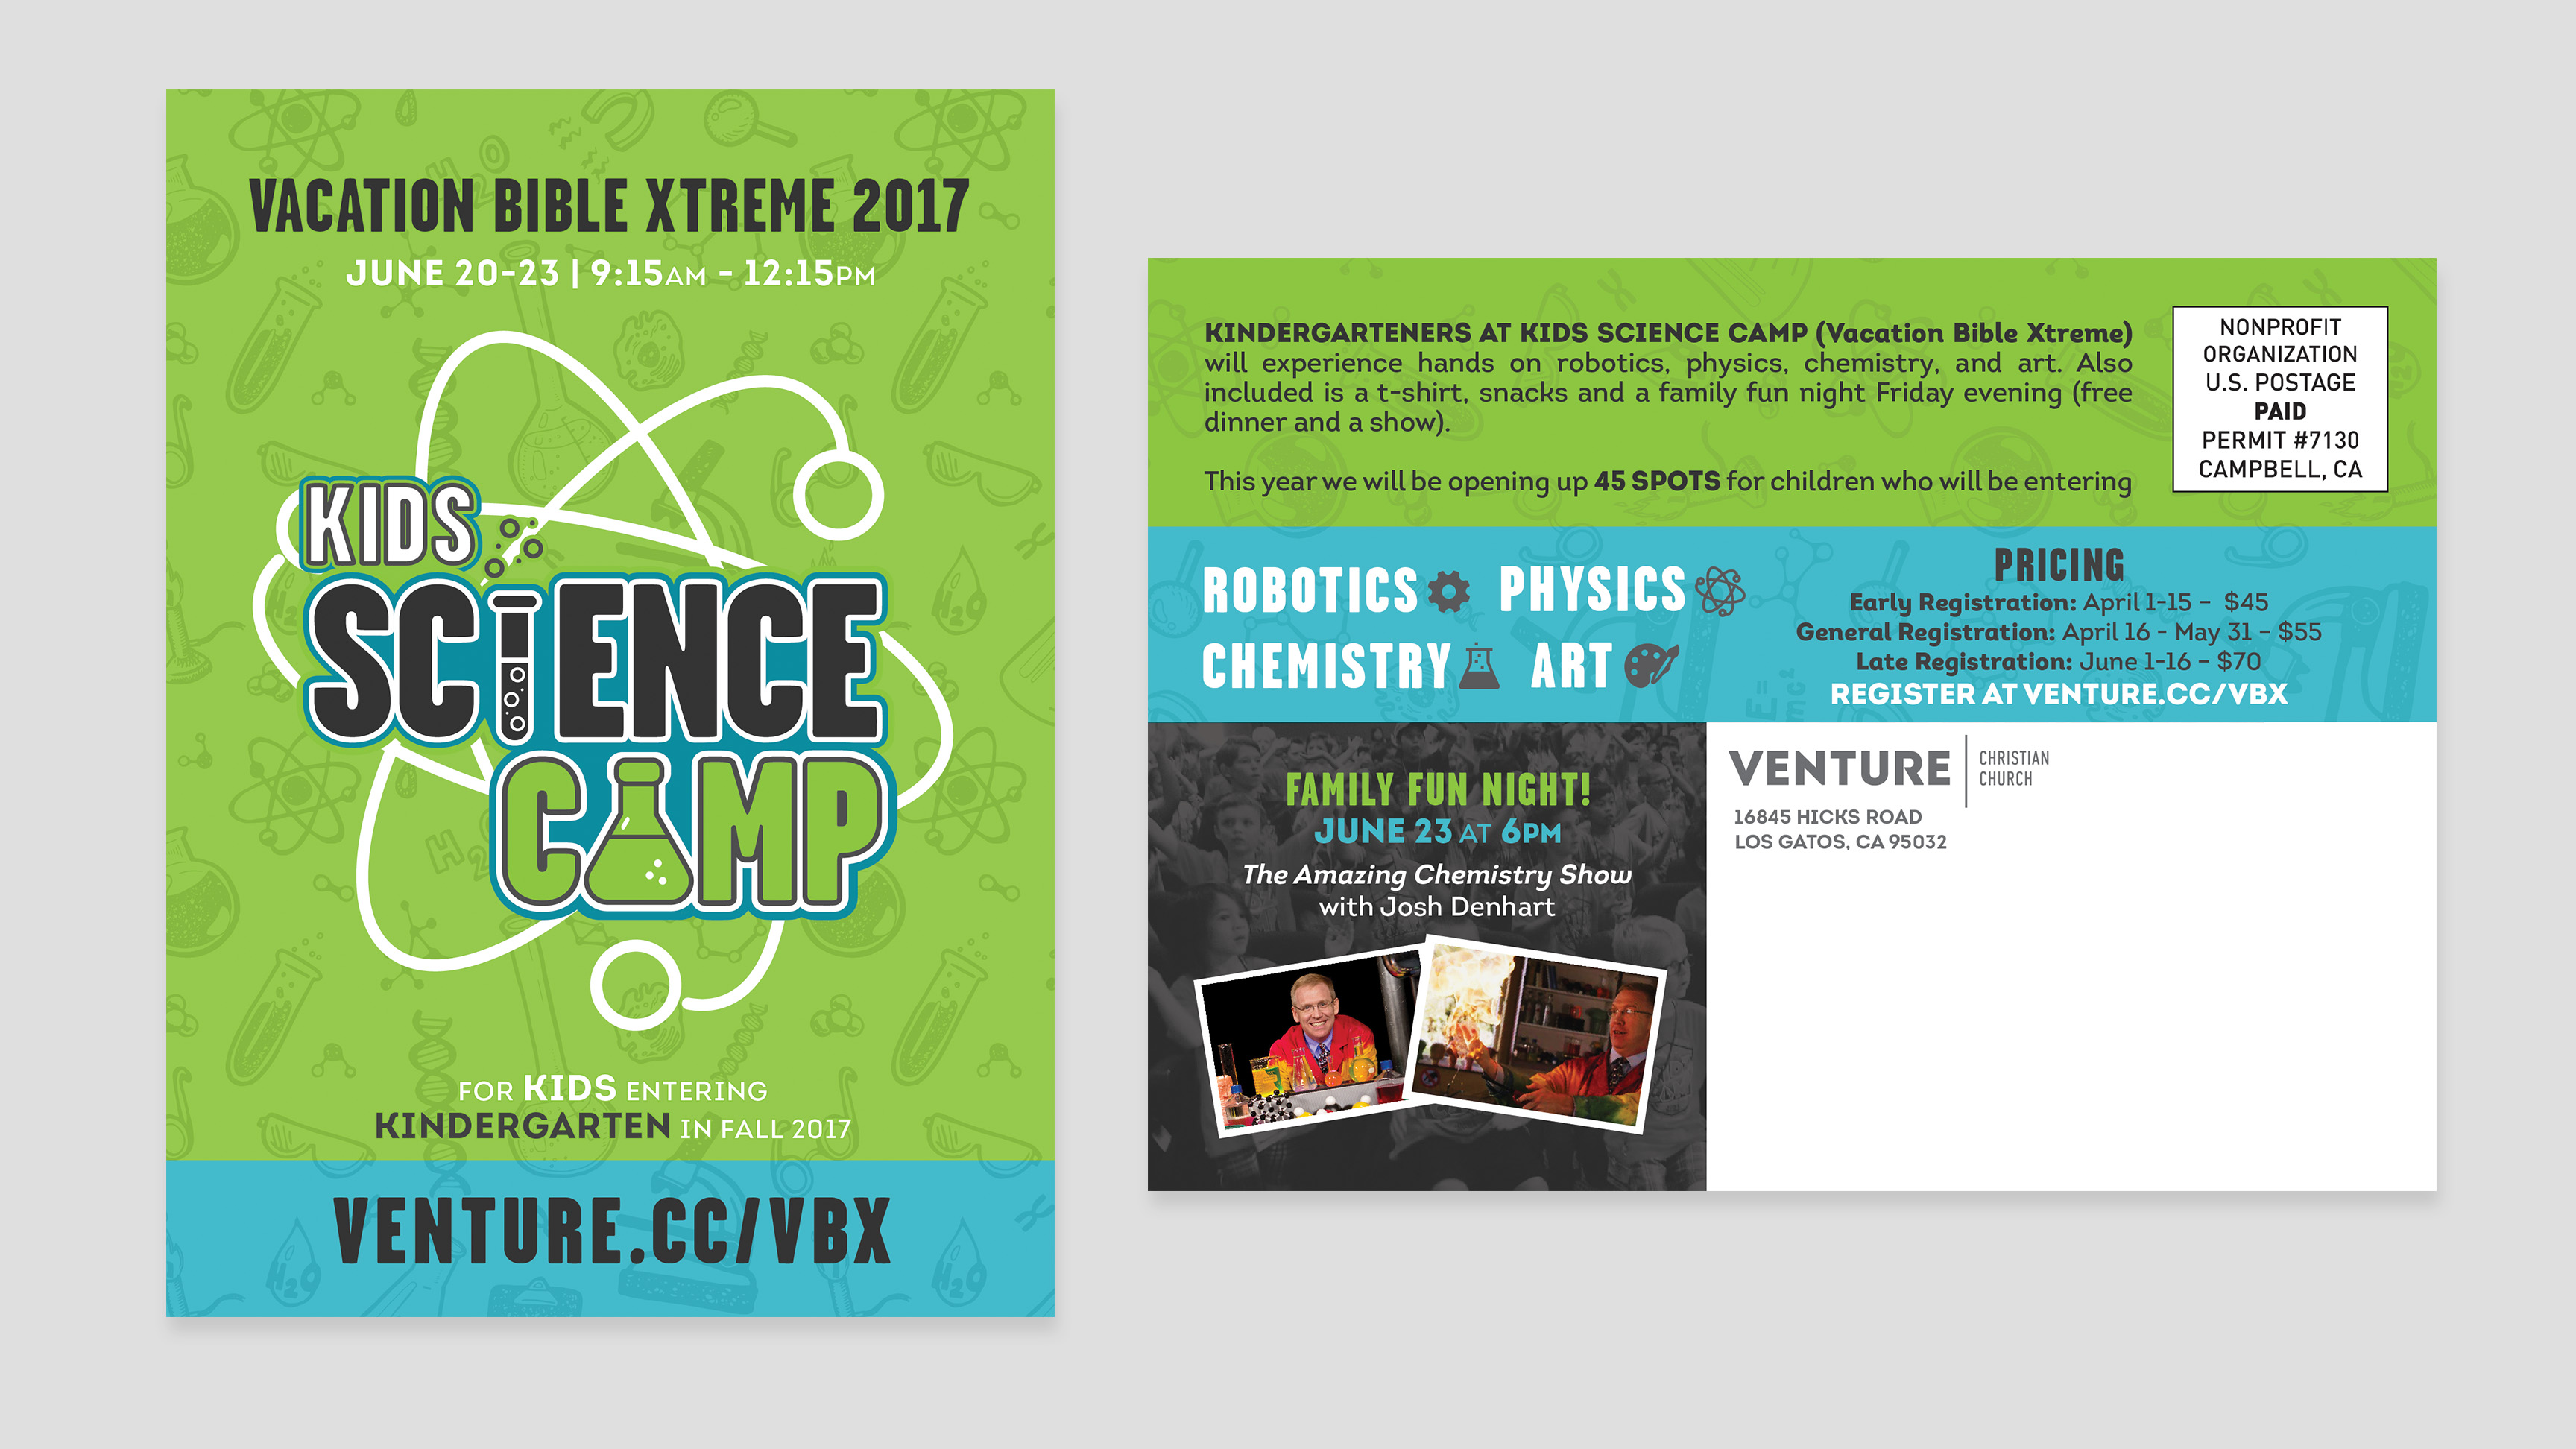 Vacation BIble School/ VBX Kids Science Camp Postcard Branding and Graphic Design